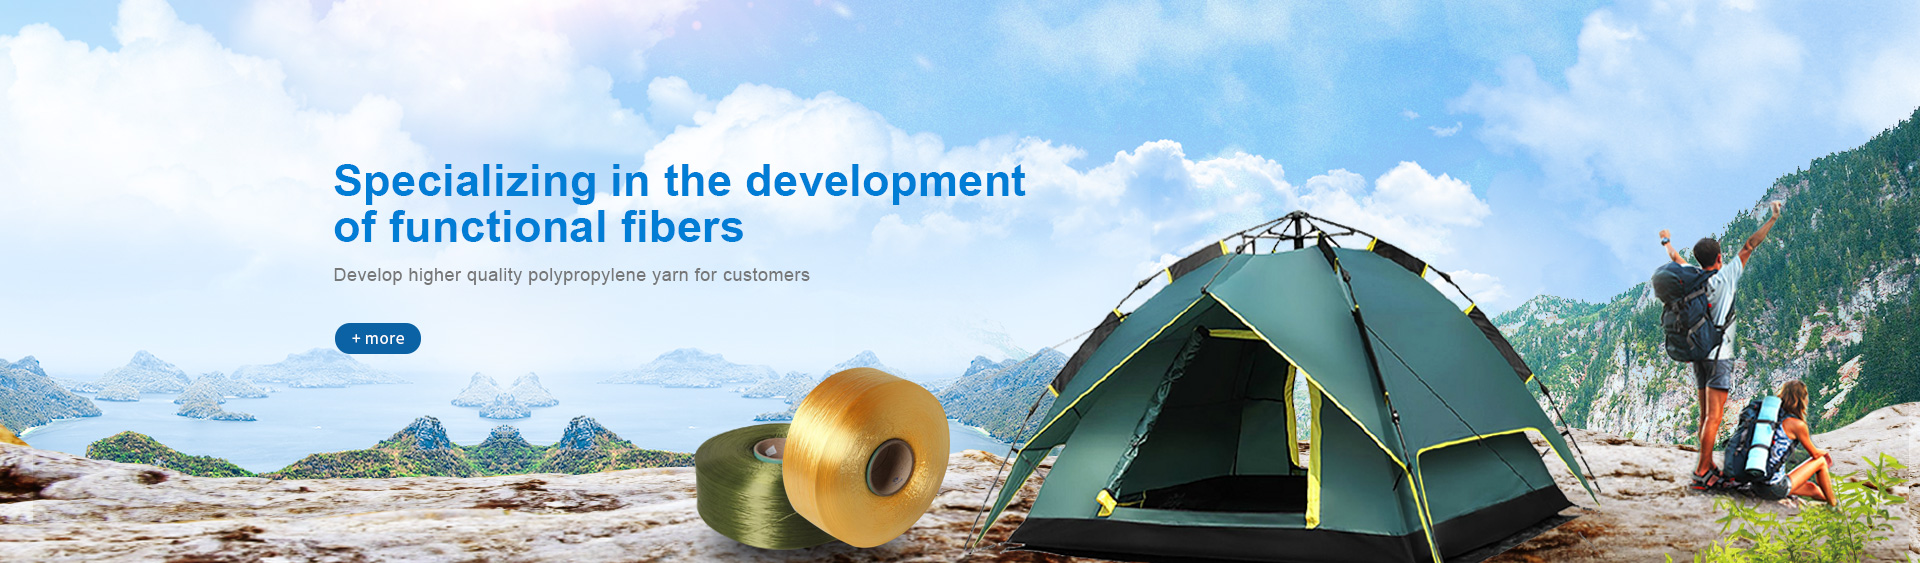 Fujian Jinquan Chemical Fiber Products Co., Ltd. official site| Home| Polypropylene reclaimed yarn| polypropylene hollow yarn| pp yarn, polypropylene light body yarn| polypropylene yarn